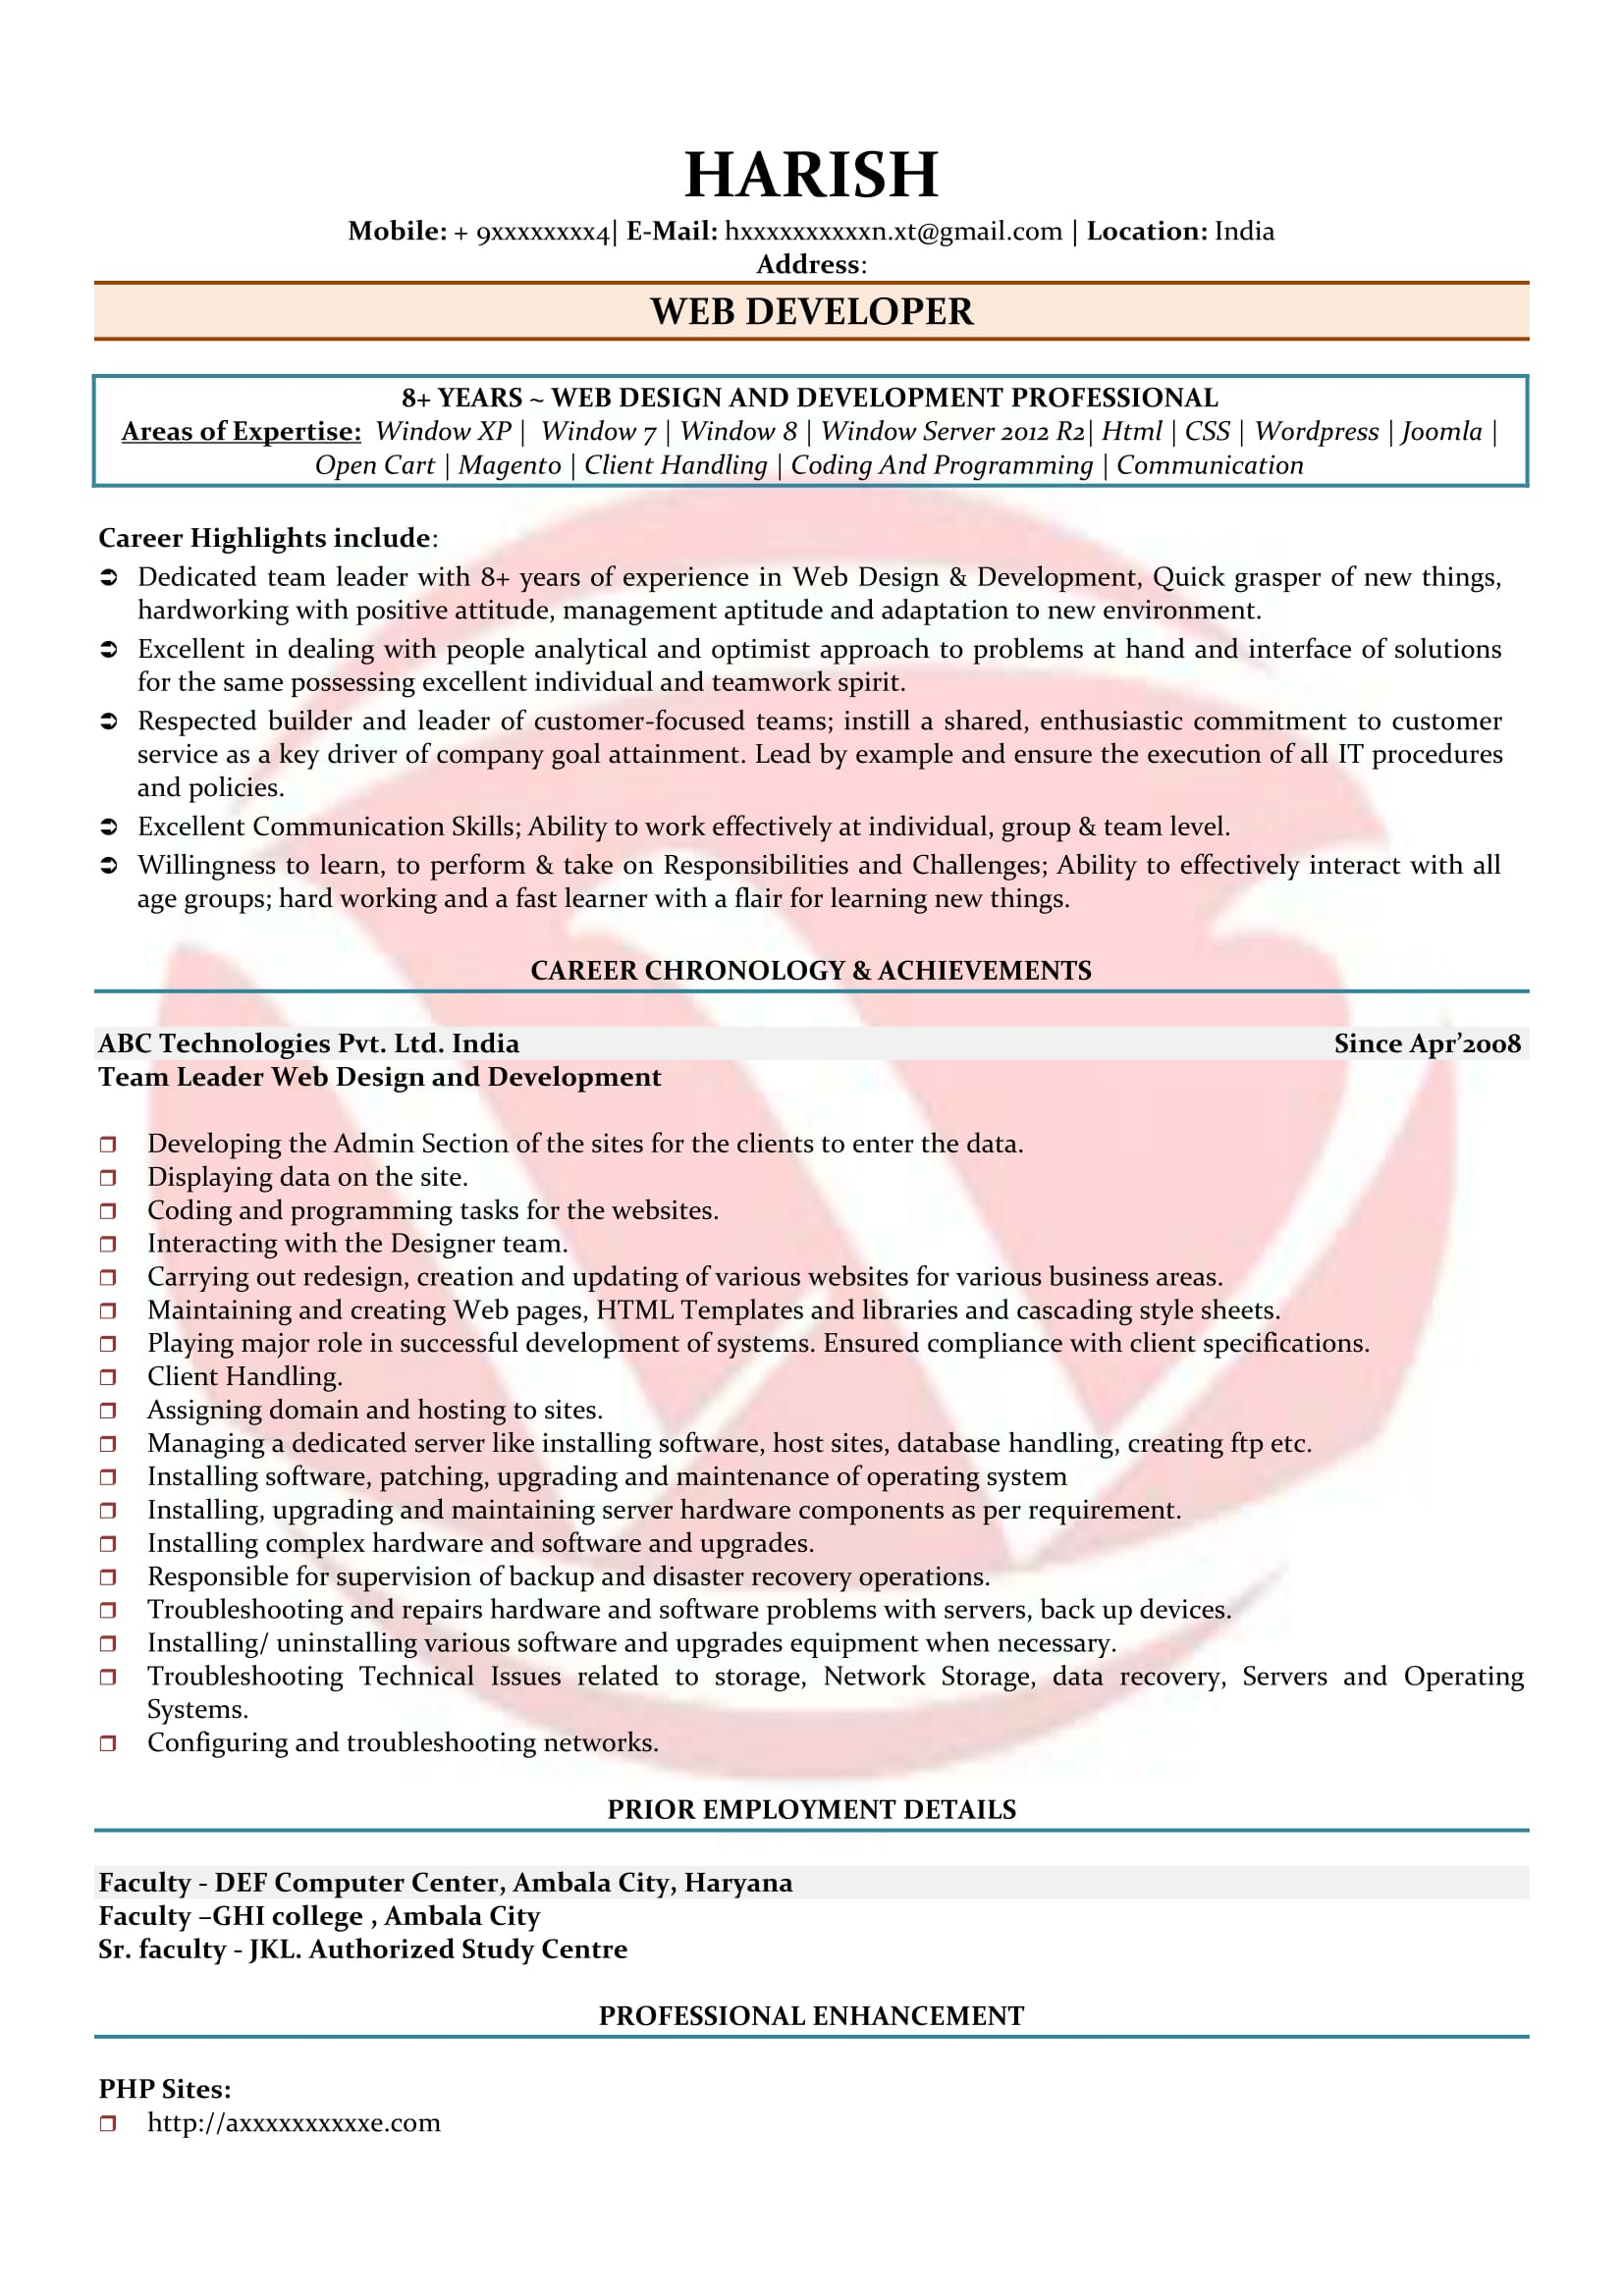 Web Developer Sample Resumes, Download Resume Format Templates!